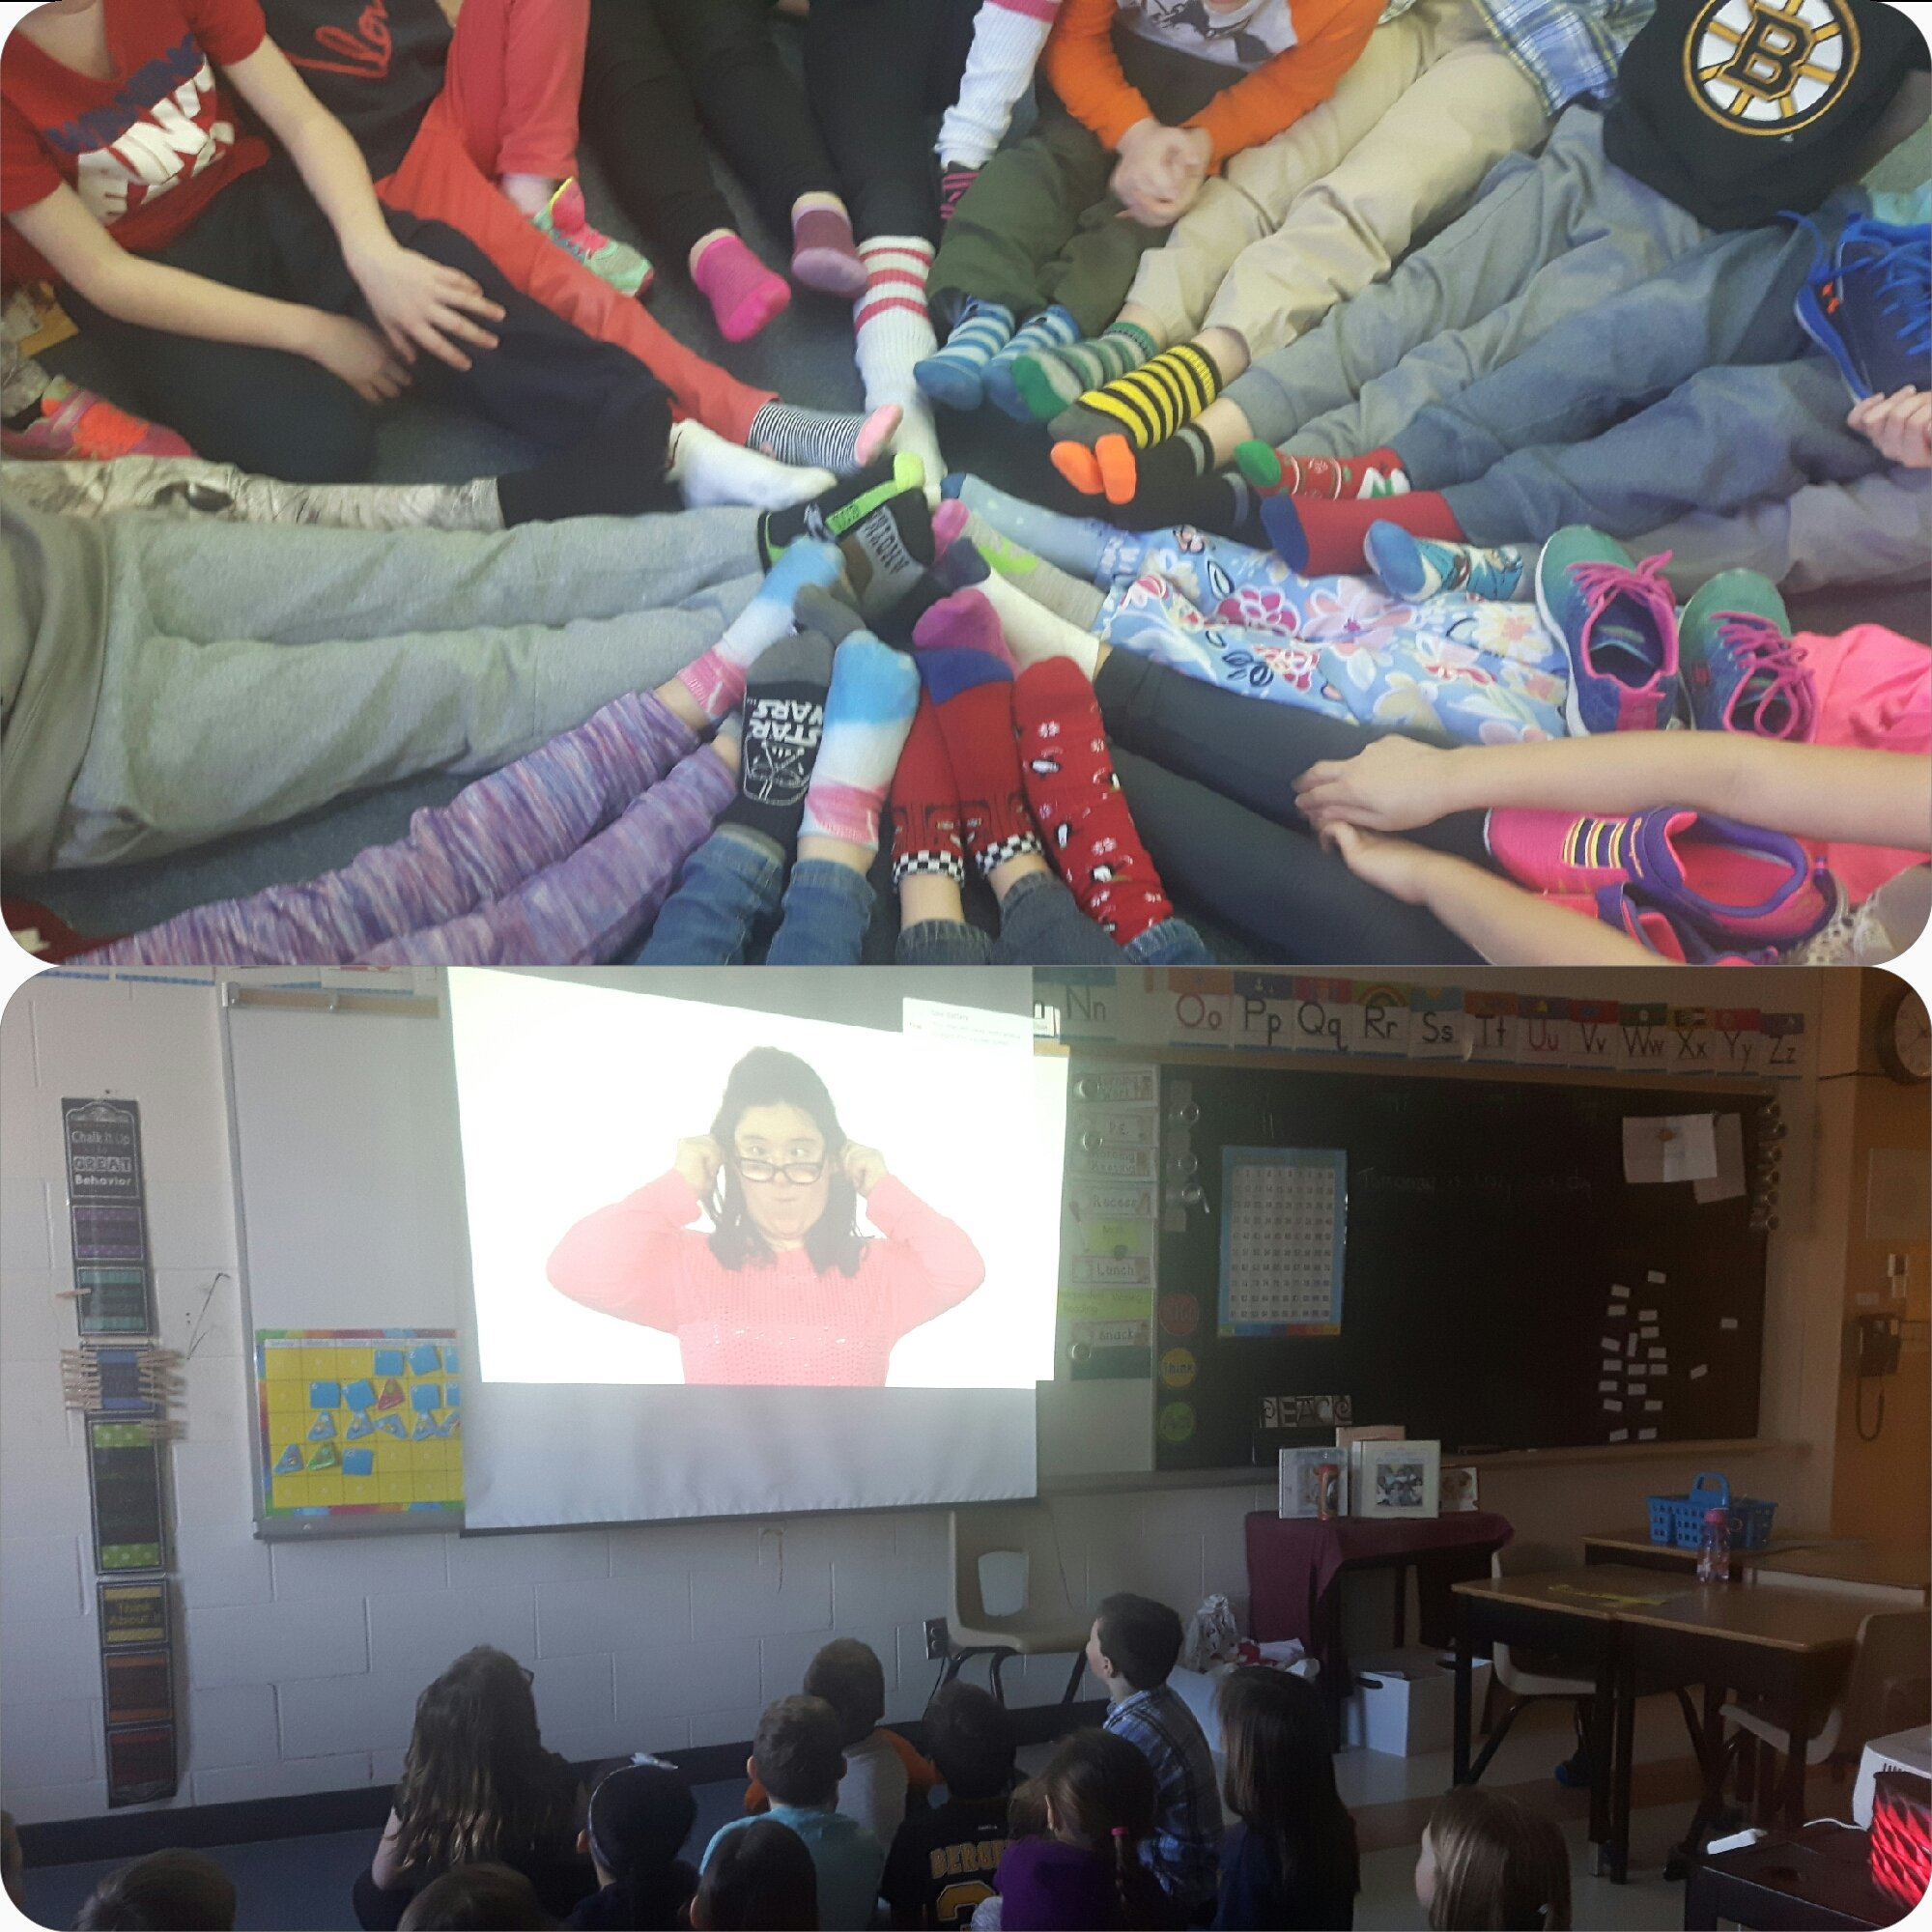 Ms. Hendy's class celebrating and learning about World Down Syndrome day #rockyoursocks https://t.co/L0FRDLfCDn